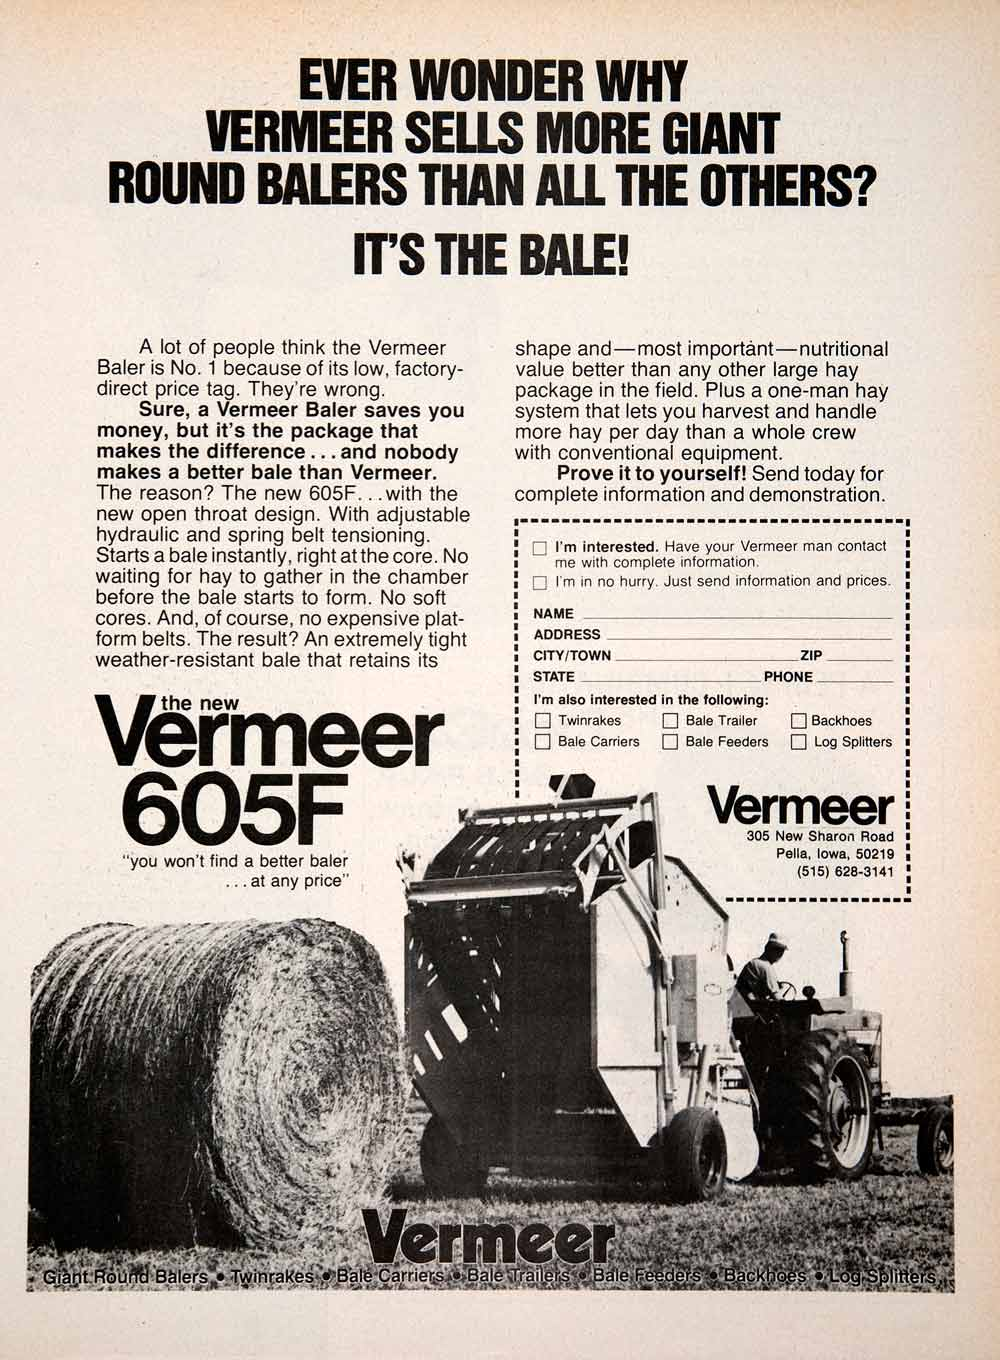 605c vermeer round baler good or bad - 1978 Ad Vermeer Pella Iowa Baler Hay Agriculture Farming Advertisement 605f Sf4